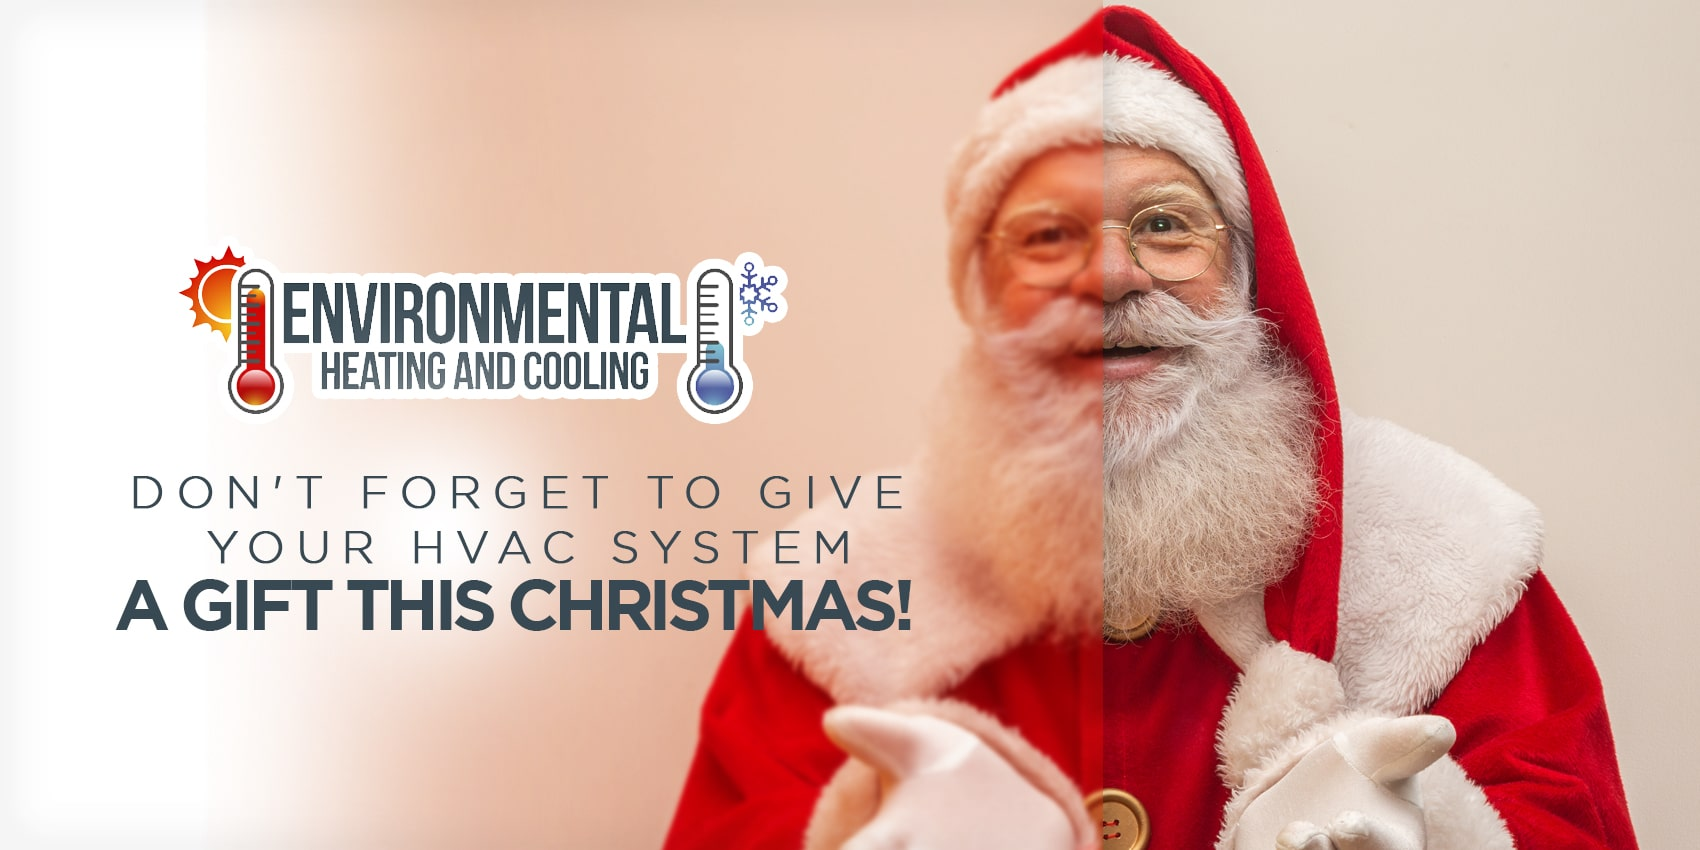 Don't Forget to Give Your HVAC System a Gift This Christmas!